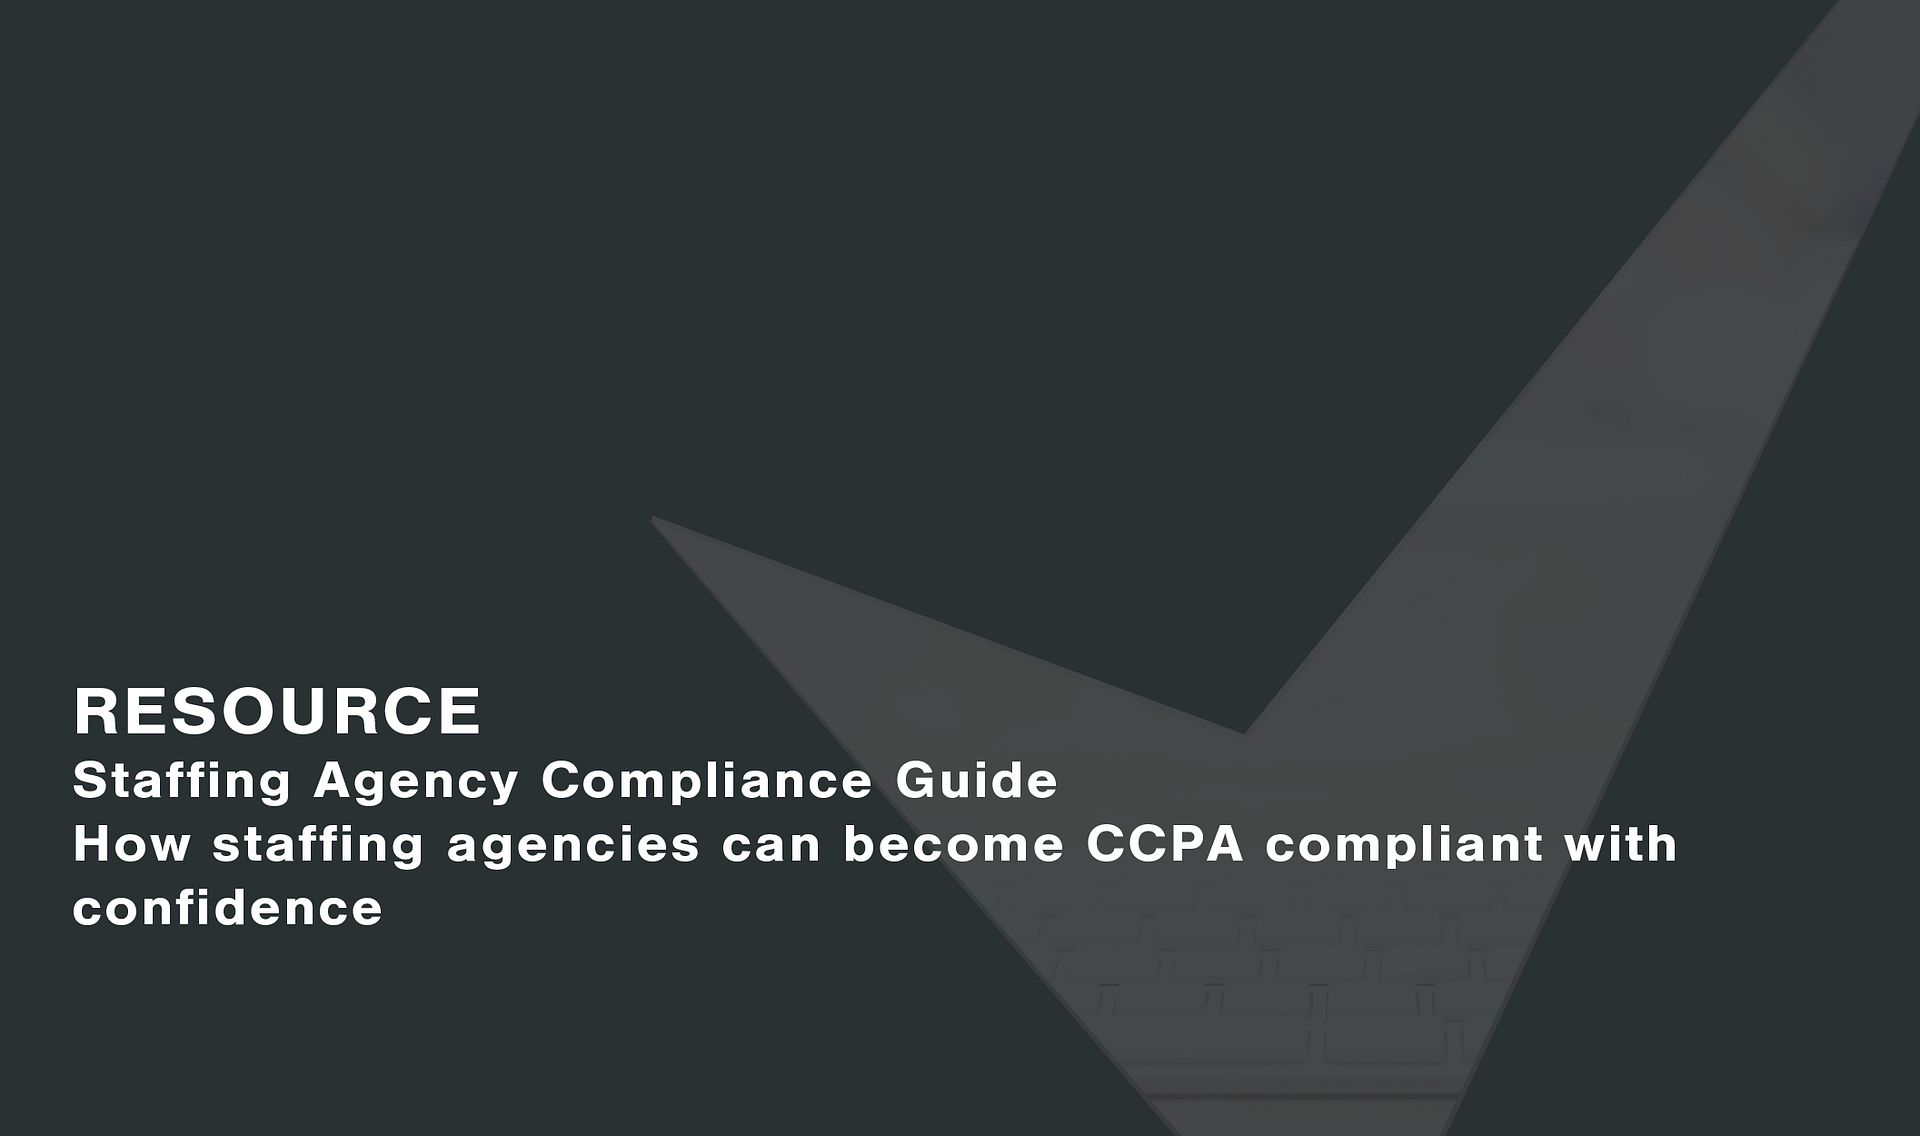 Staffing Agency and CCPA Guide Cassie personal information & consent management